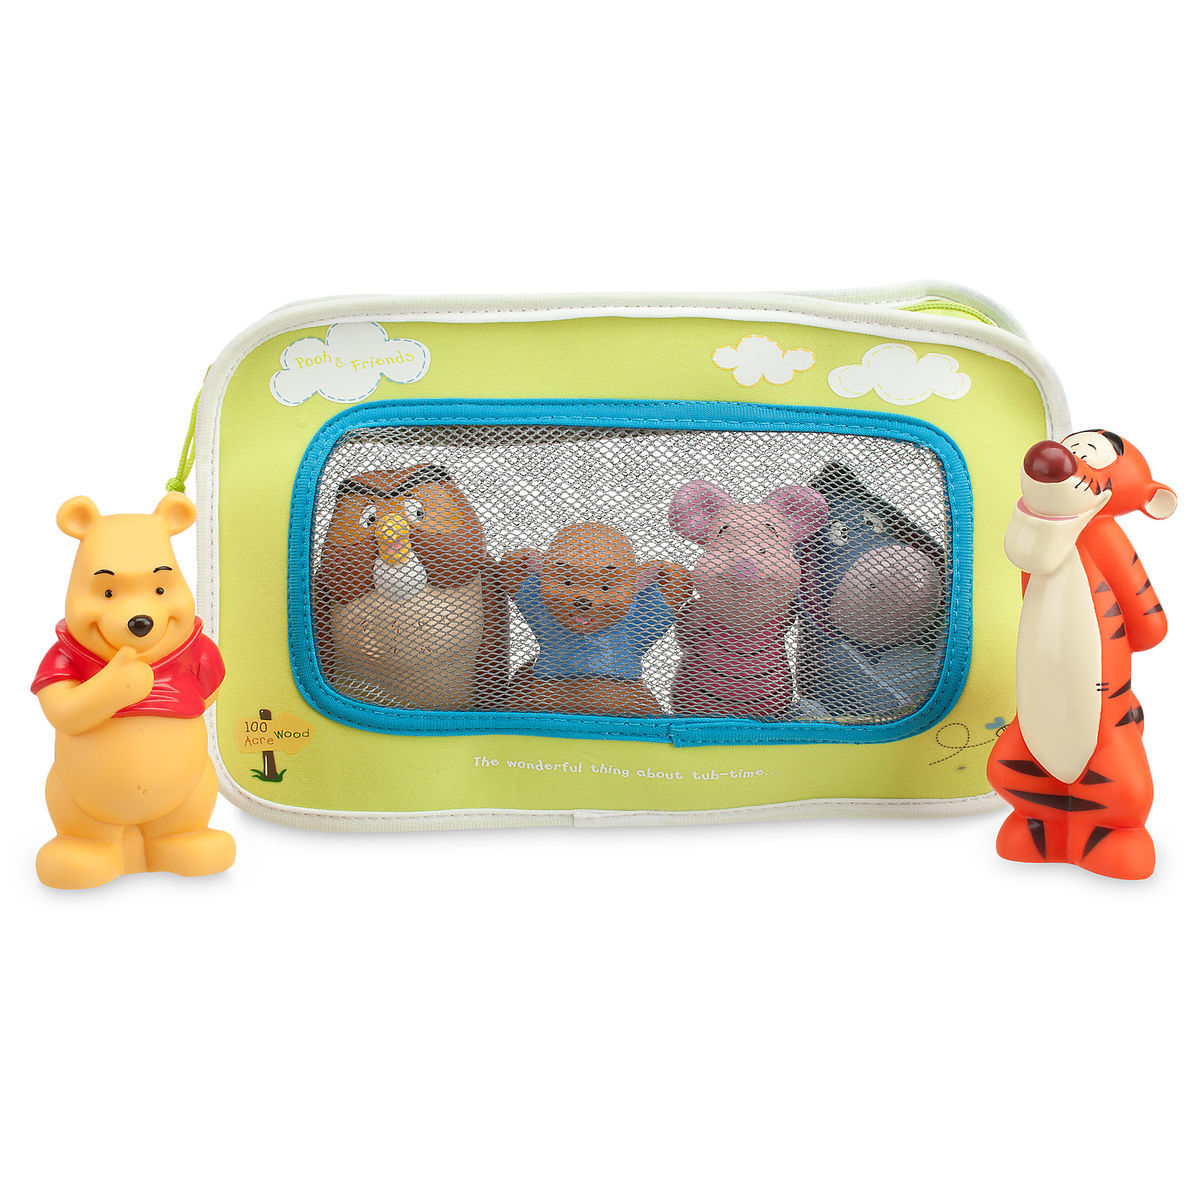 Winnie the Pooh and Pals Bath Toy Set for Baby | shopDisney